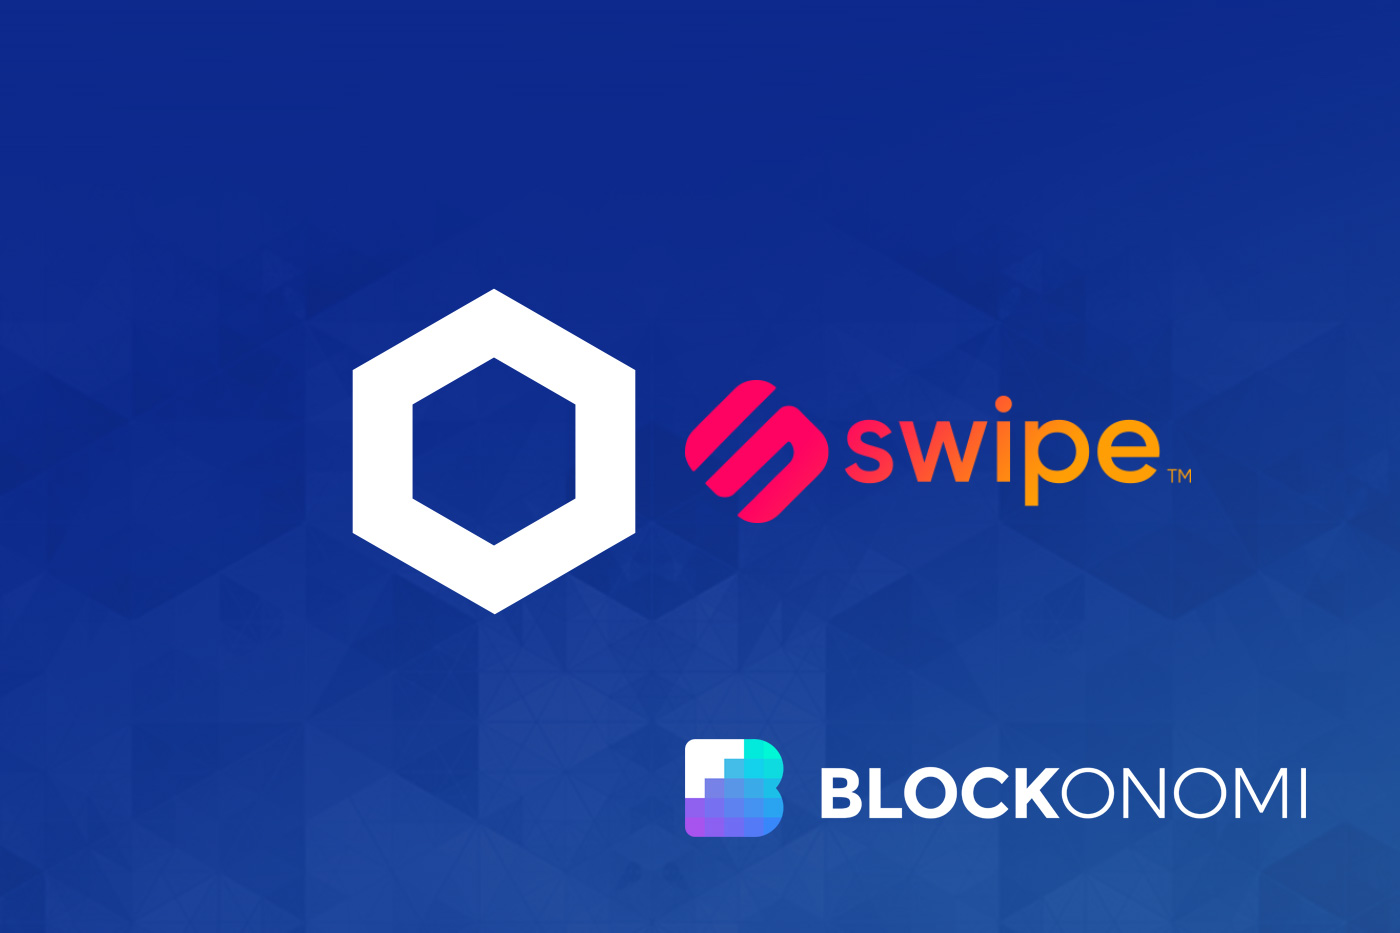 Chainlink: Meta Oracles & LINK Embraced By <bold>Swipe</bold> App for Price Data